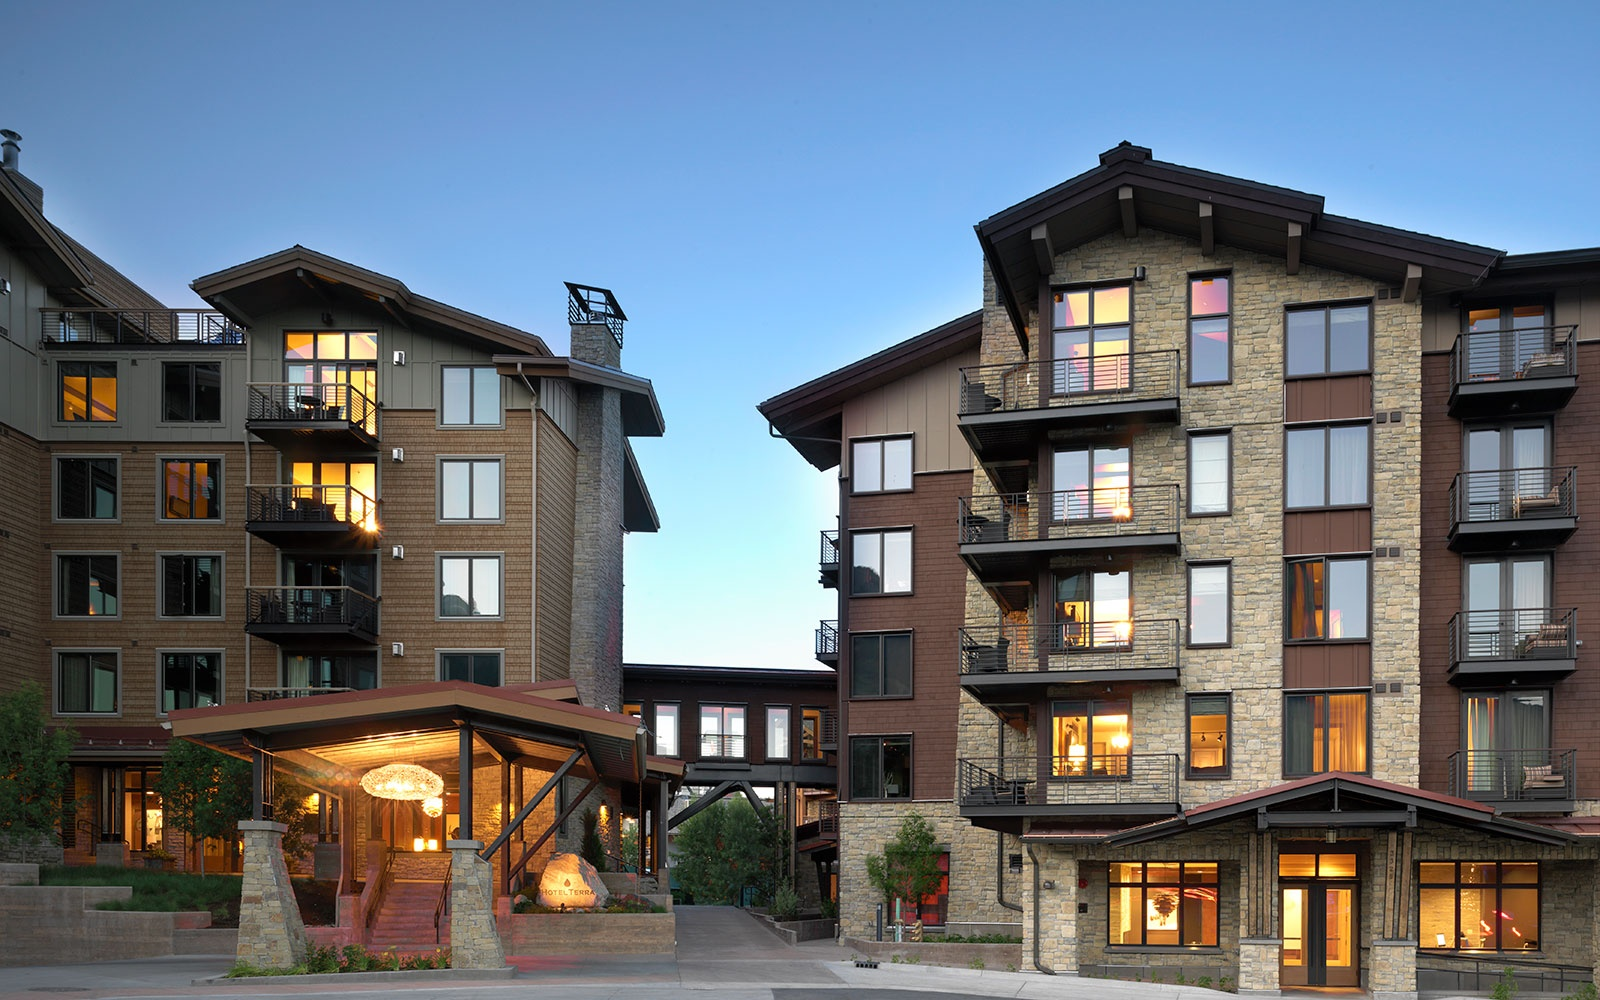 Hotel Terra Jackson Hole, Teton Village, Wyoming